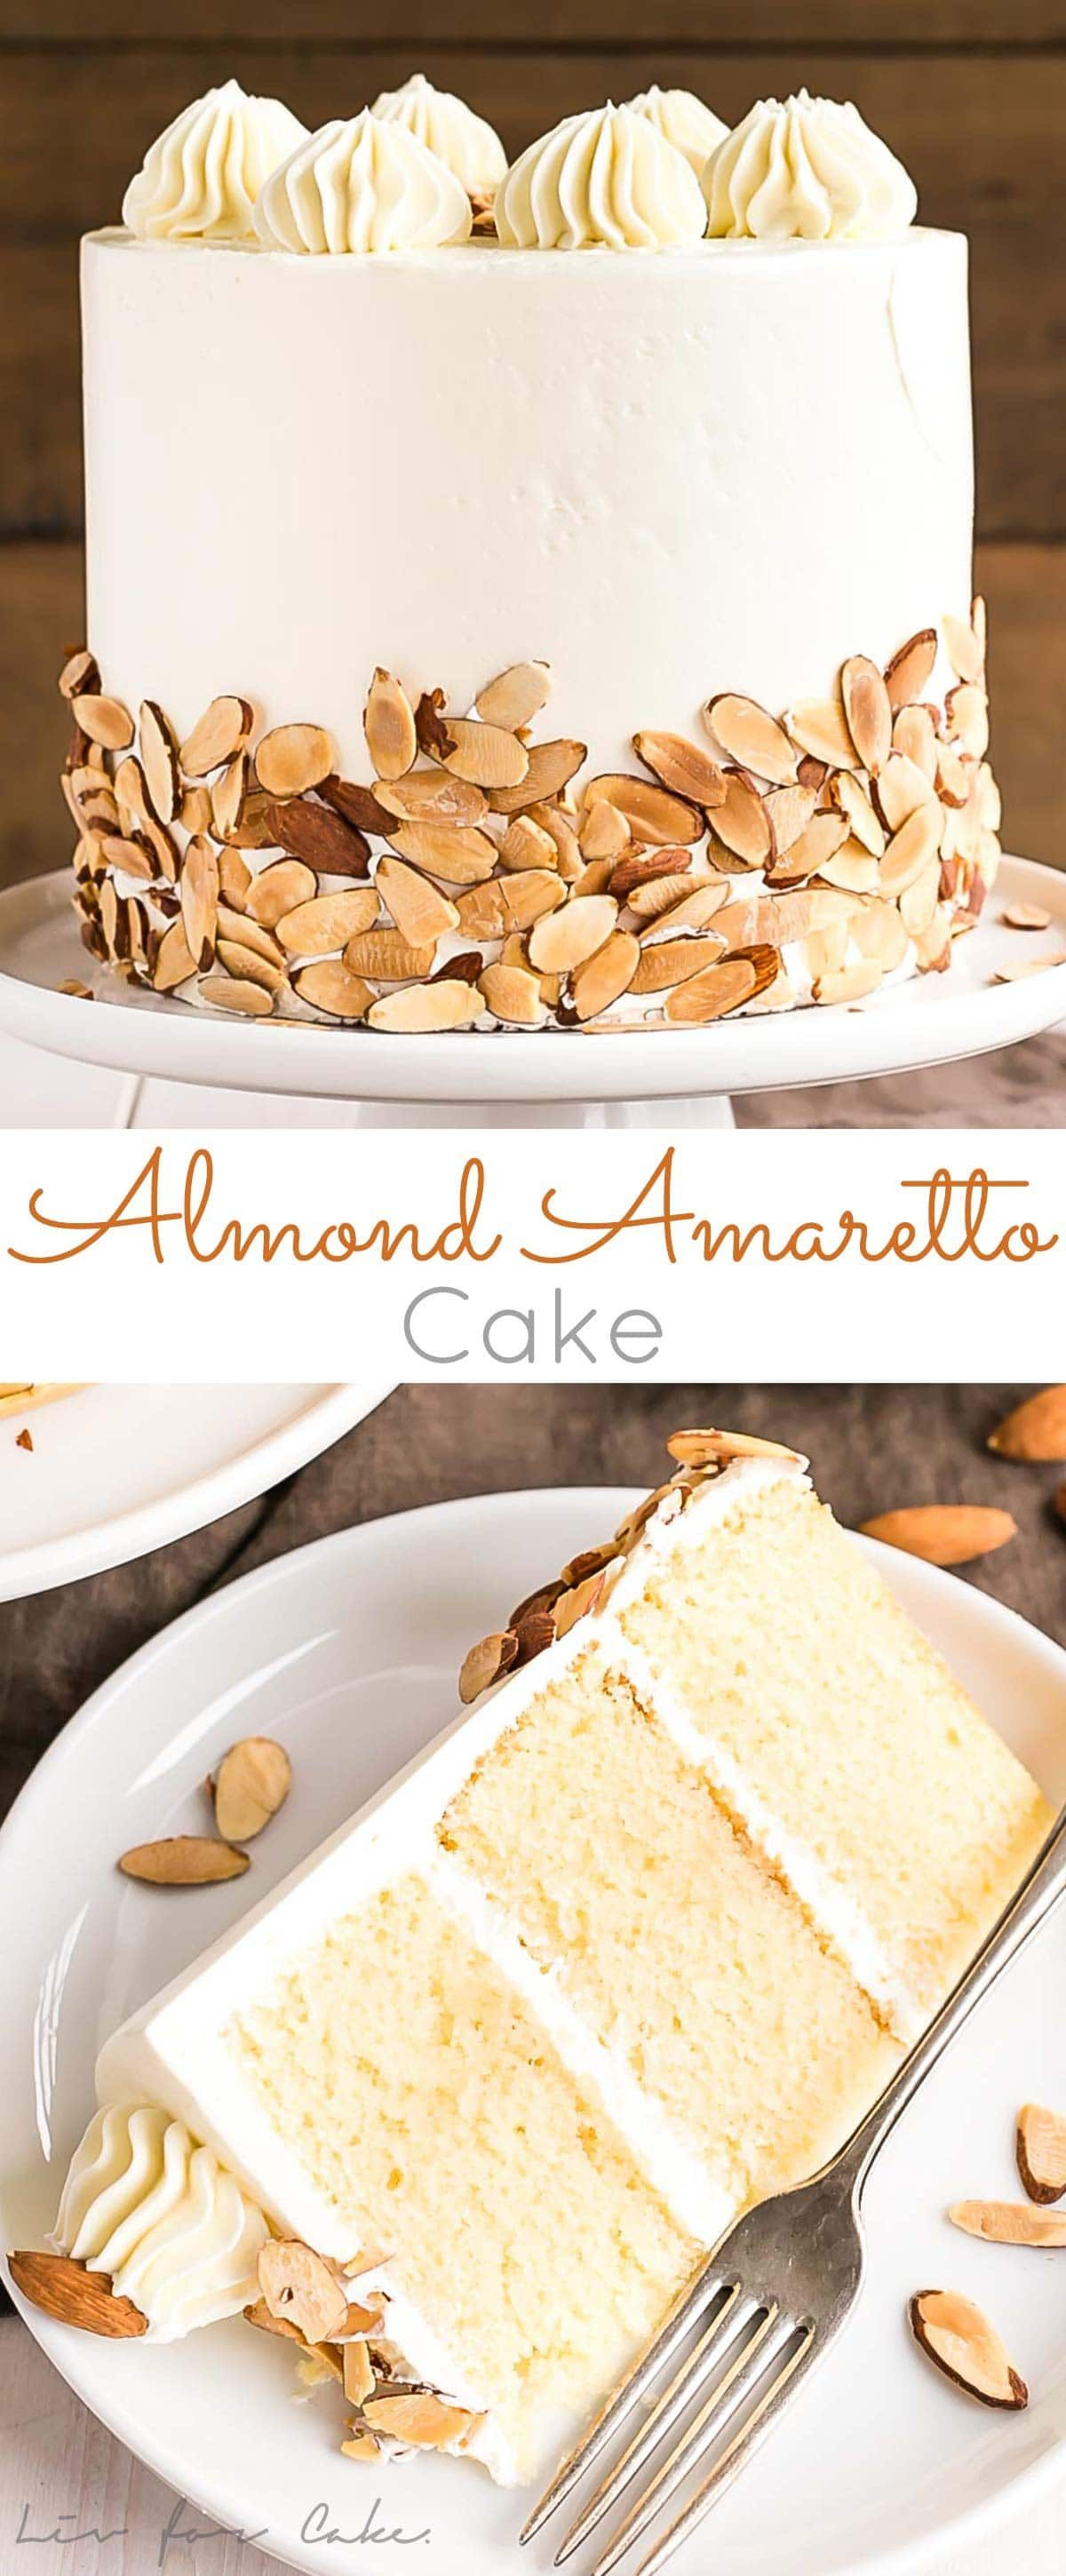 Almond Amaretto Cake is a must for any almond lover! Almond cake layers infused with Amaretto liqueur paired with a classic vanilla buttercream. |